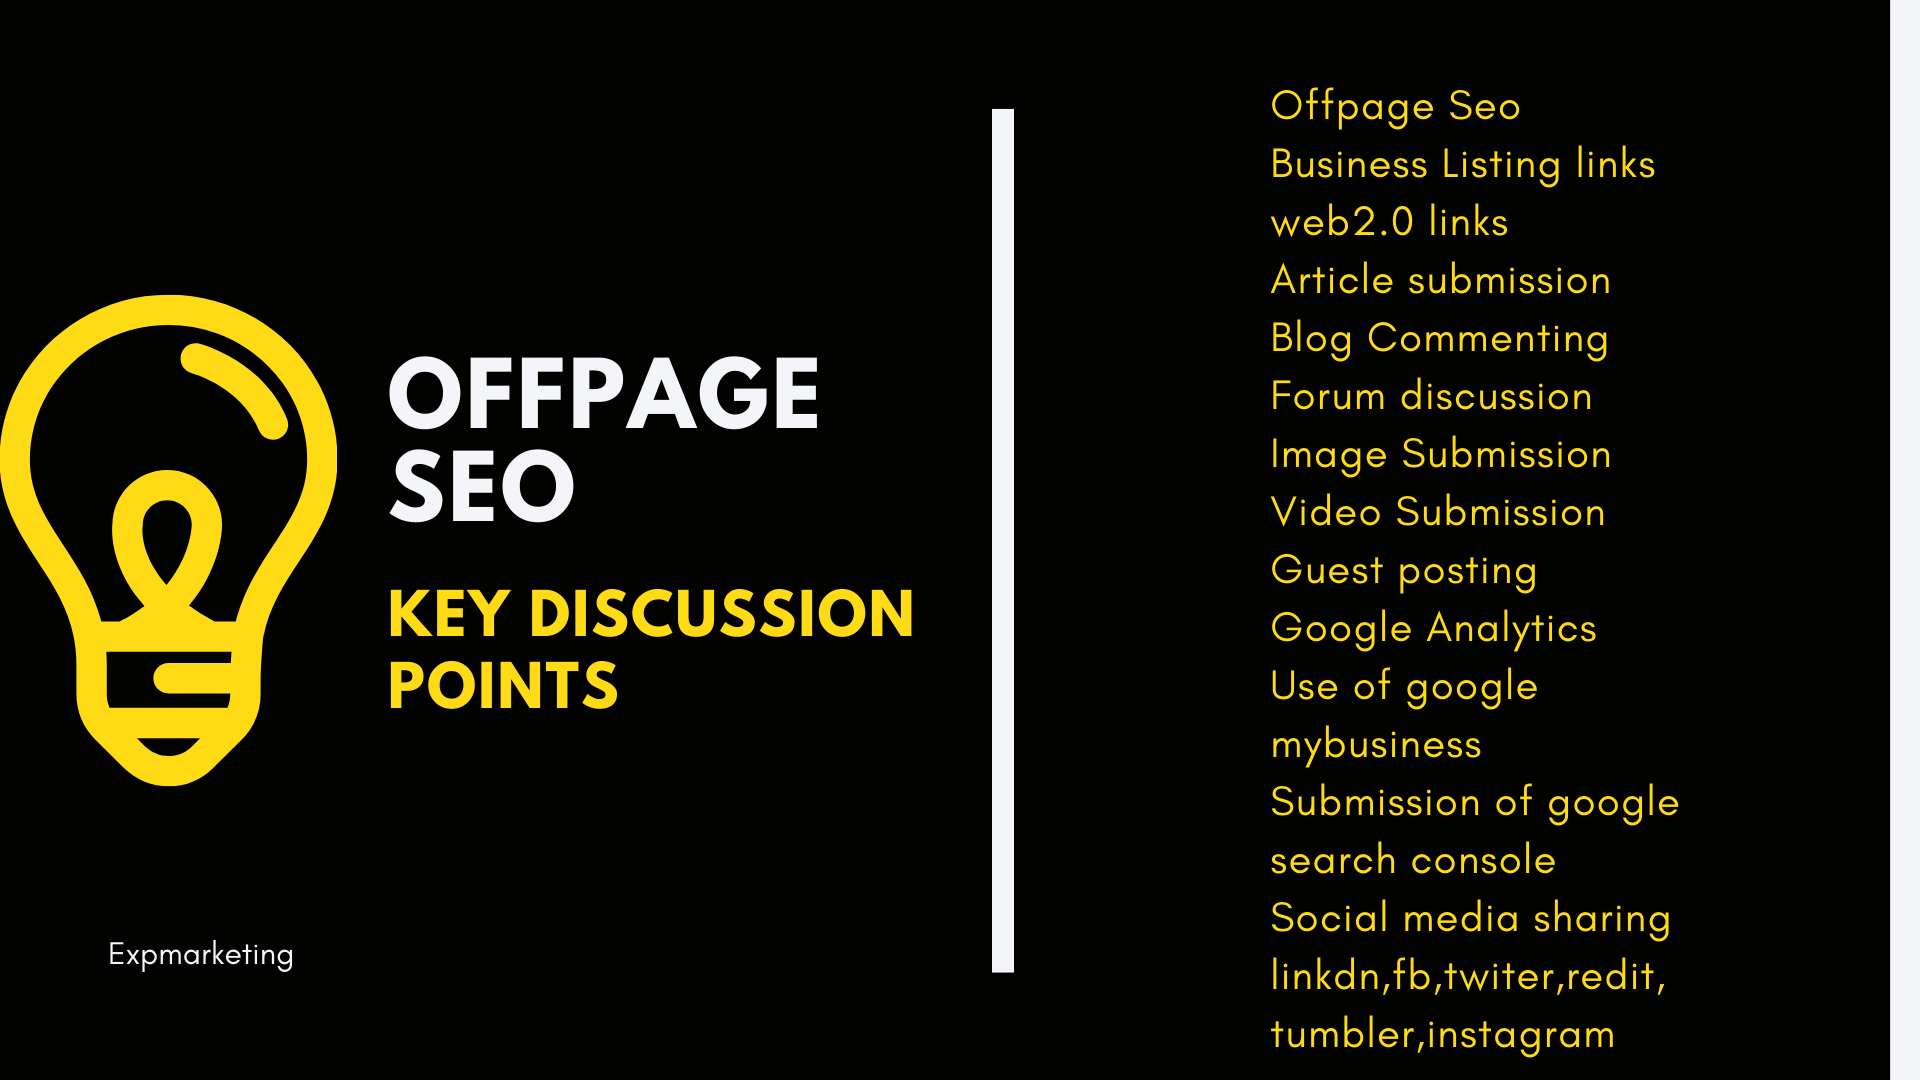 I Will Provide all SEO Services in Onapge, Offpage and Technical Seo